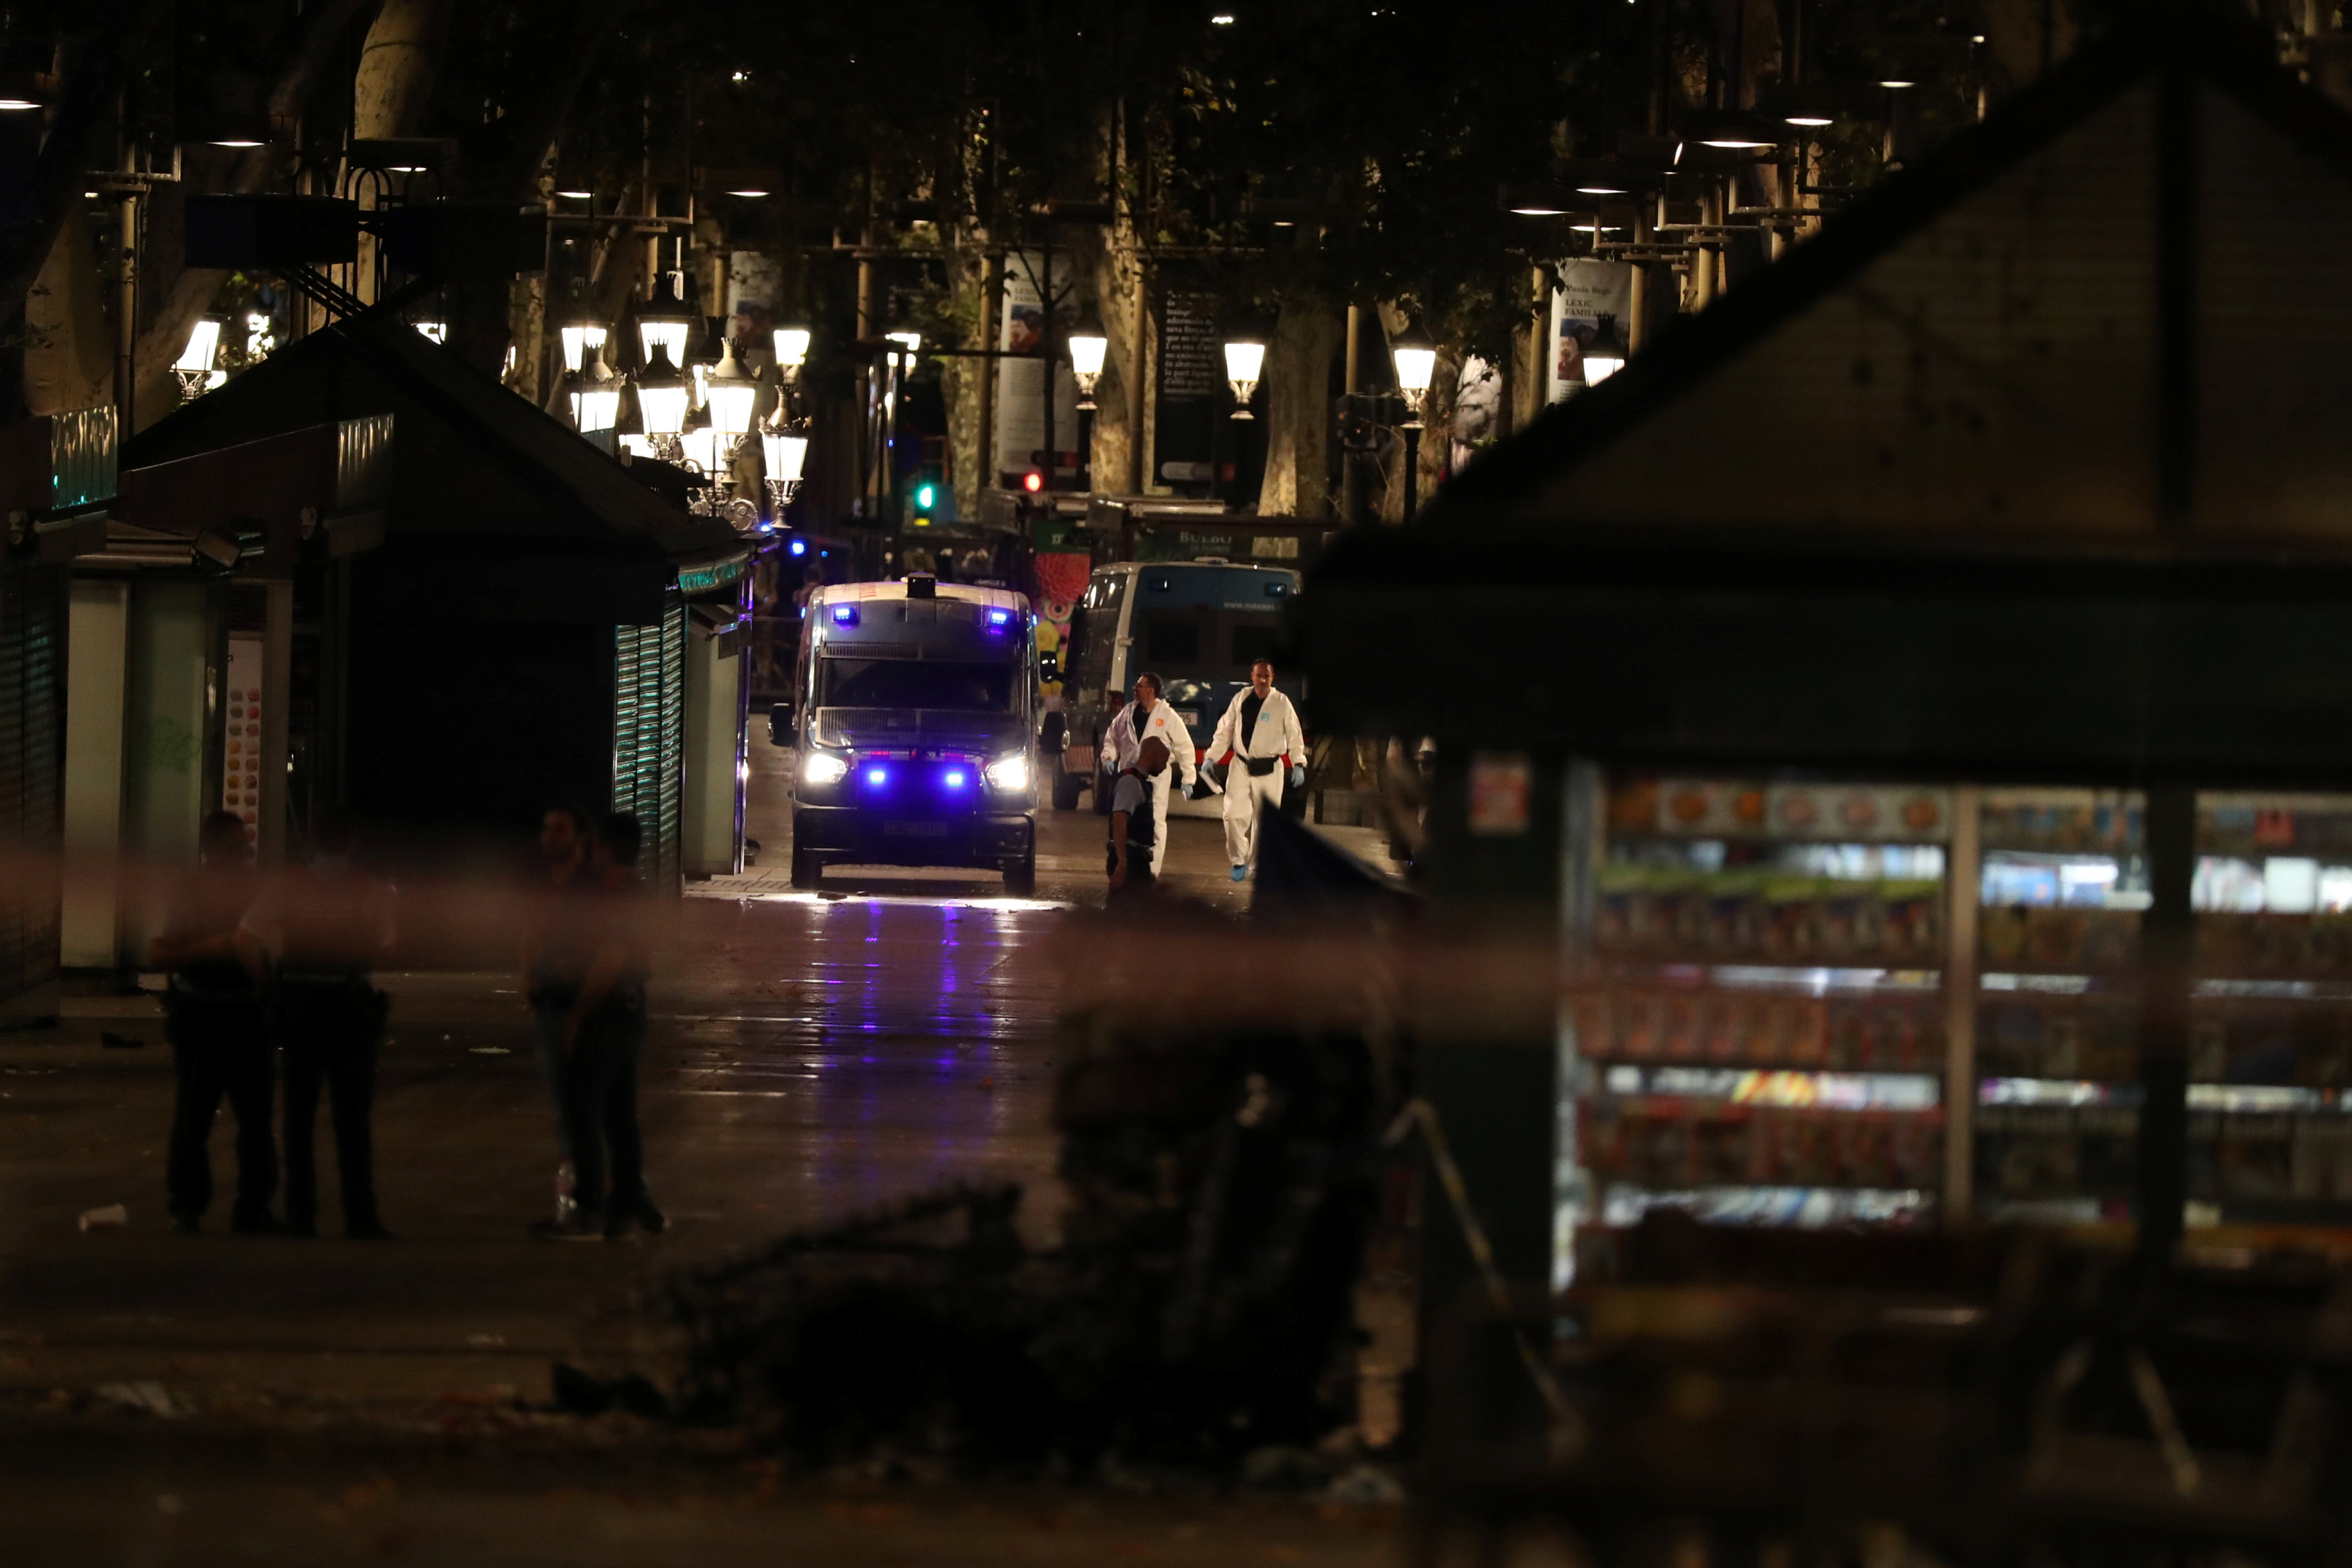 Forensic police officers search for clues near the area where a van crashed into pedestrians at Las Ramblas in Barcelona, Spain, August 17, 2017. (REUTERS/Sergio Perez)